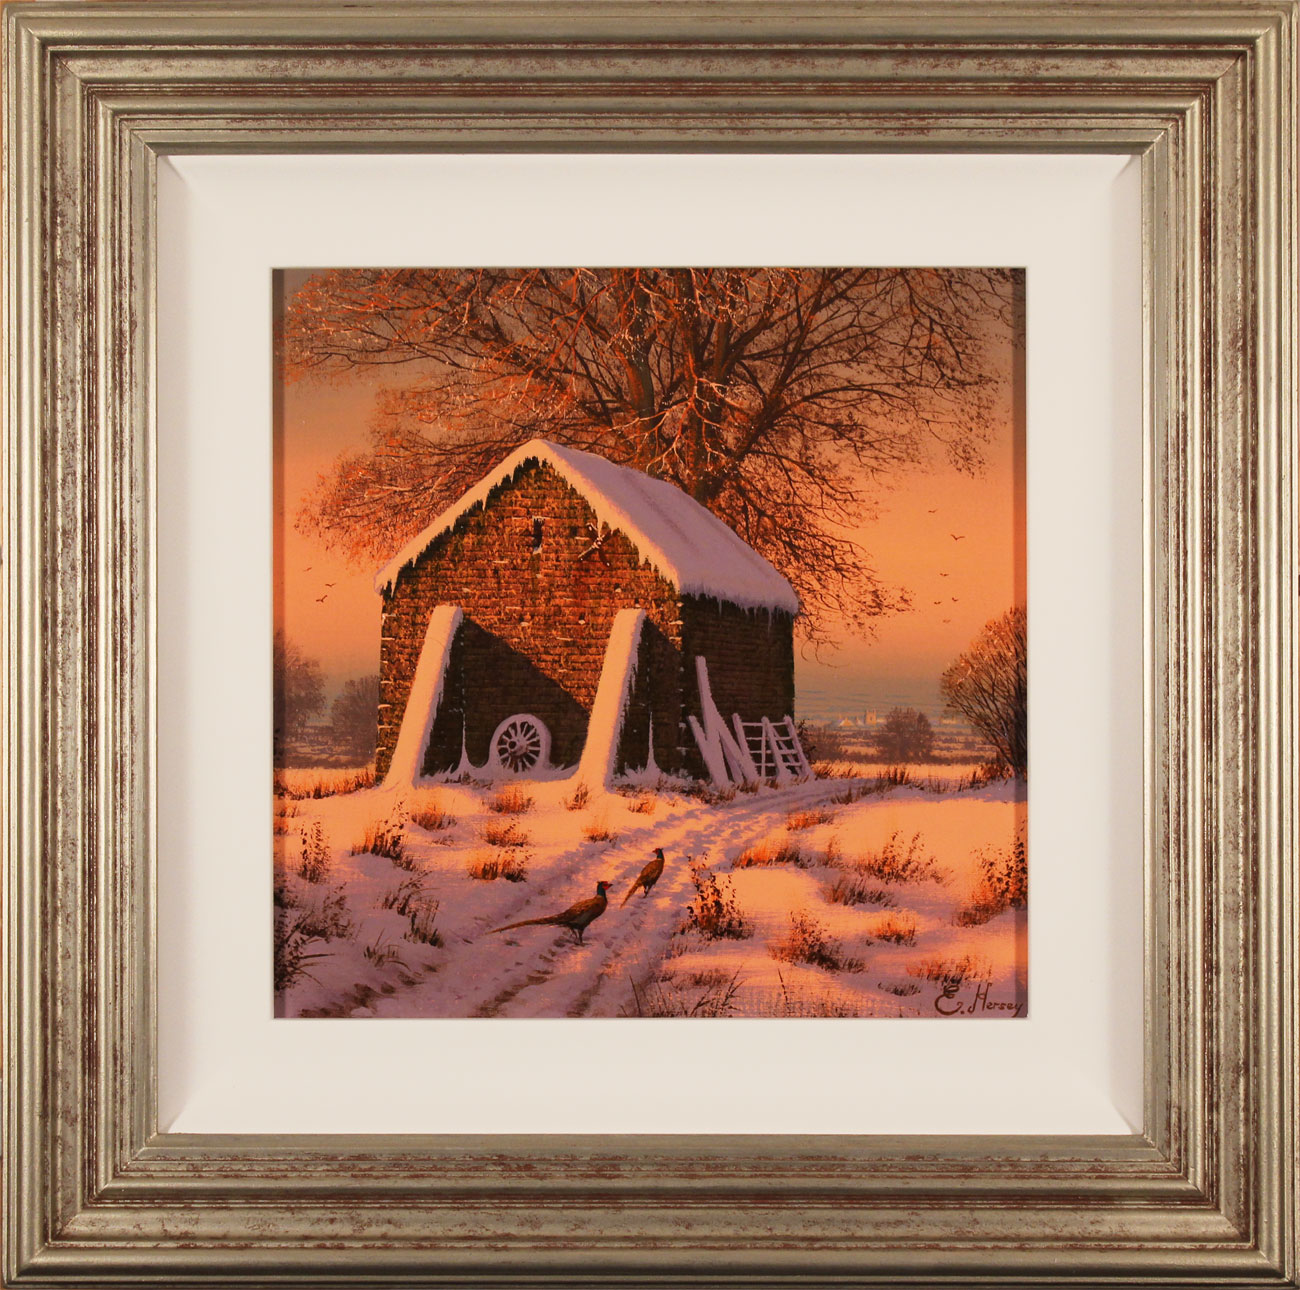 Edward Hersey, Original oil painting on canvas, A Crisp Winter's Eve. Click to enlarge